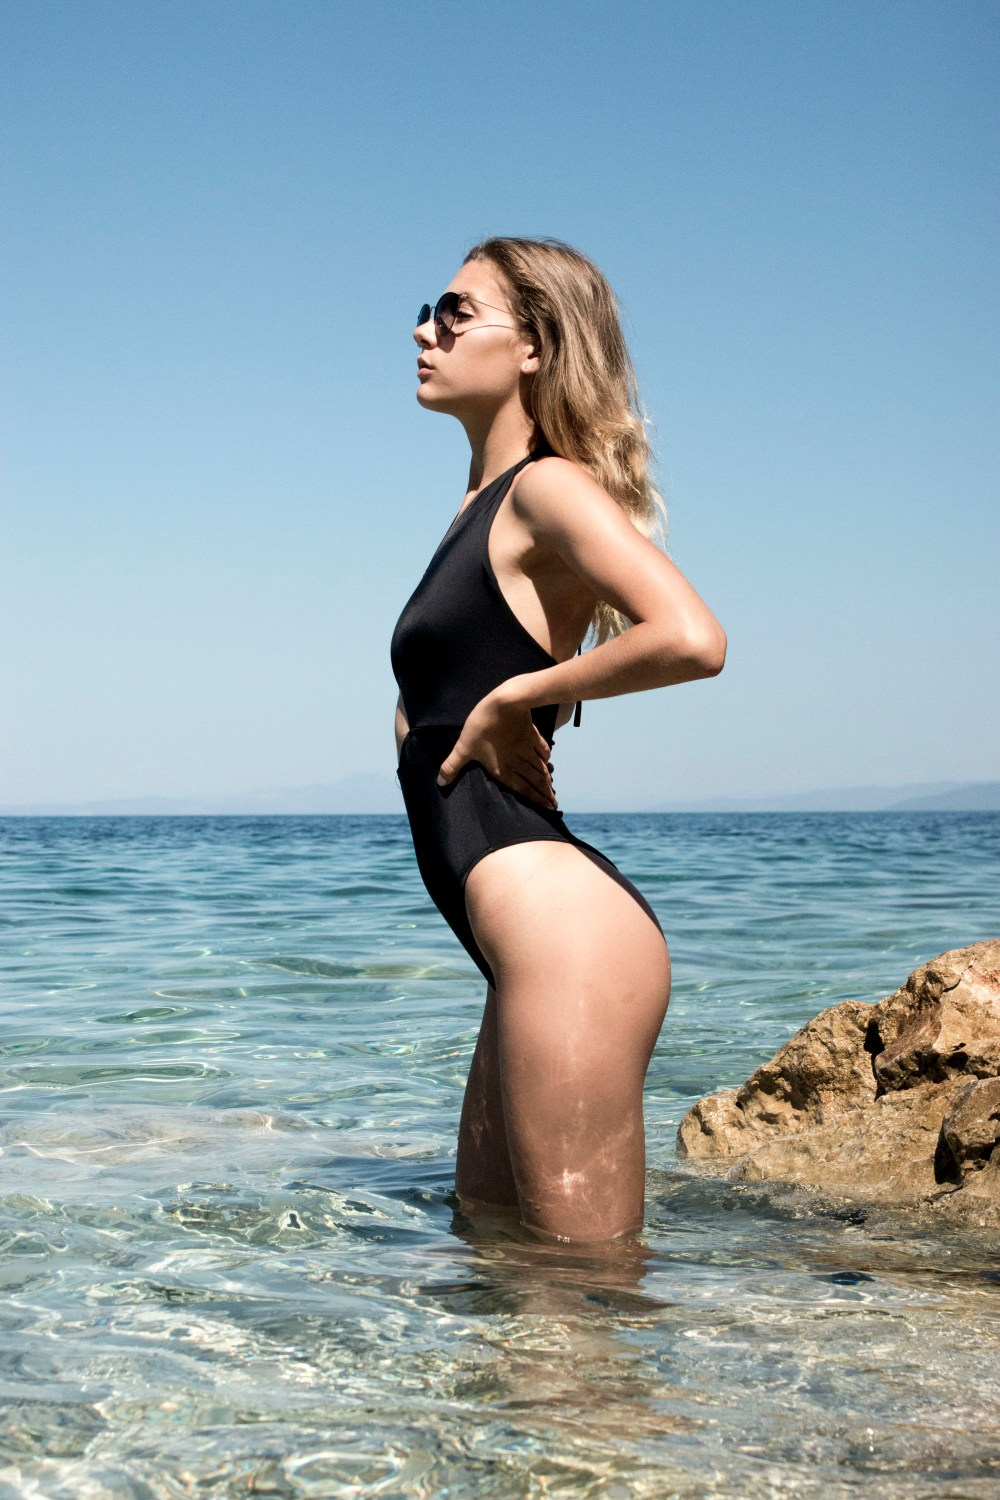 Beautiful Girl In Blue Water Wallpapers A View To The Horizon Hd Photo By Johannes Zottele